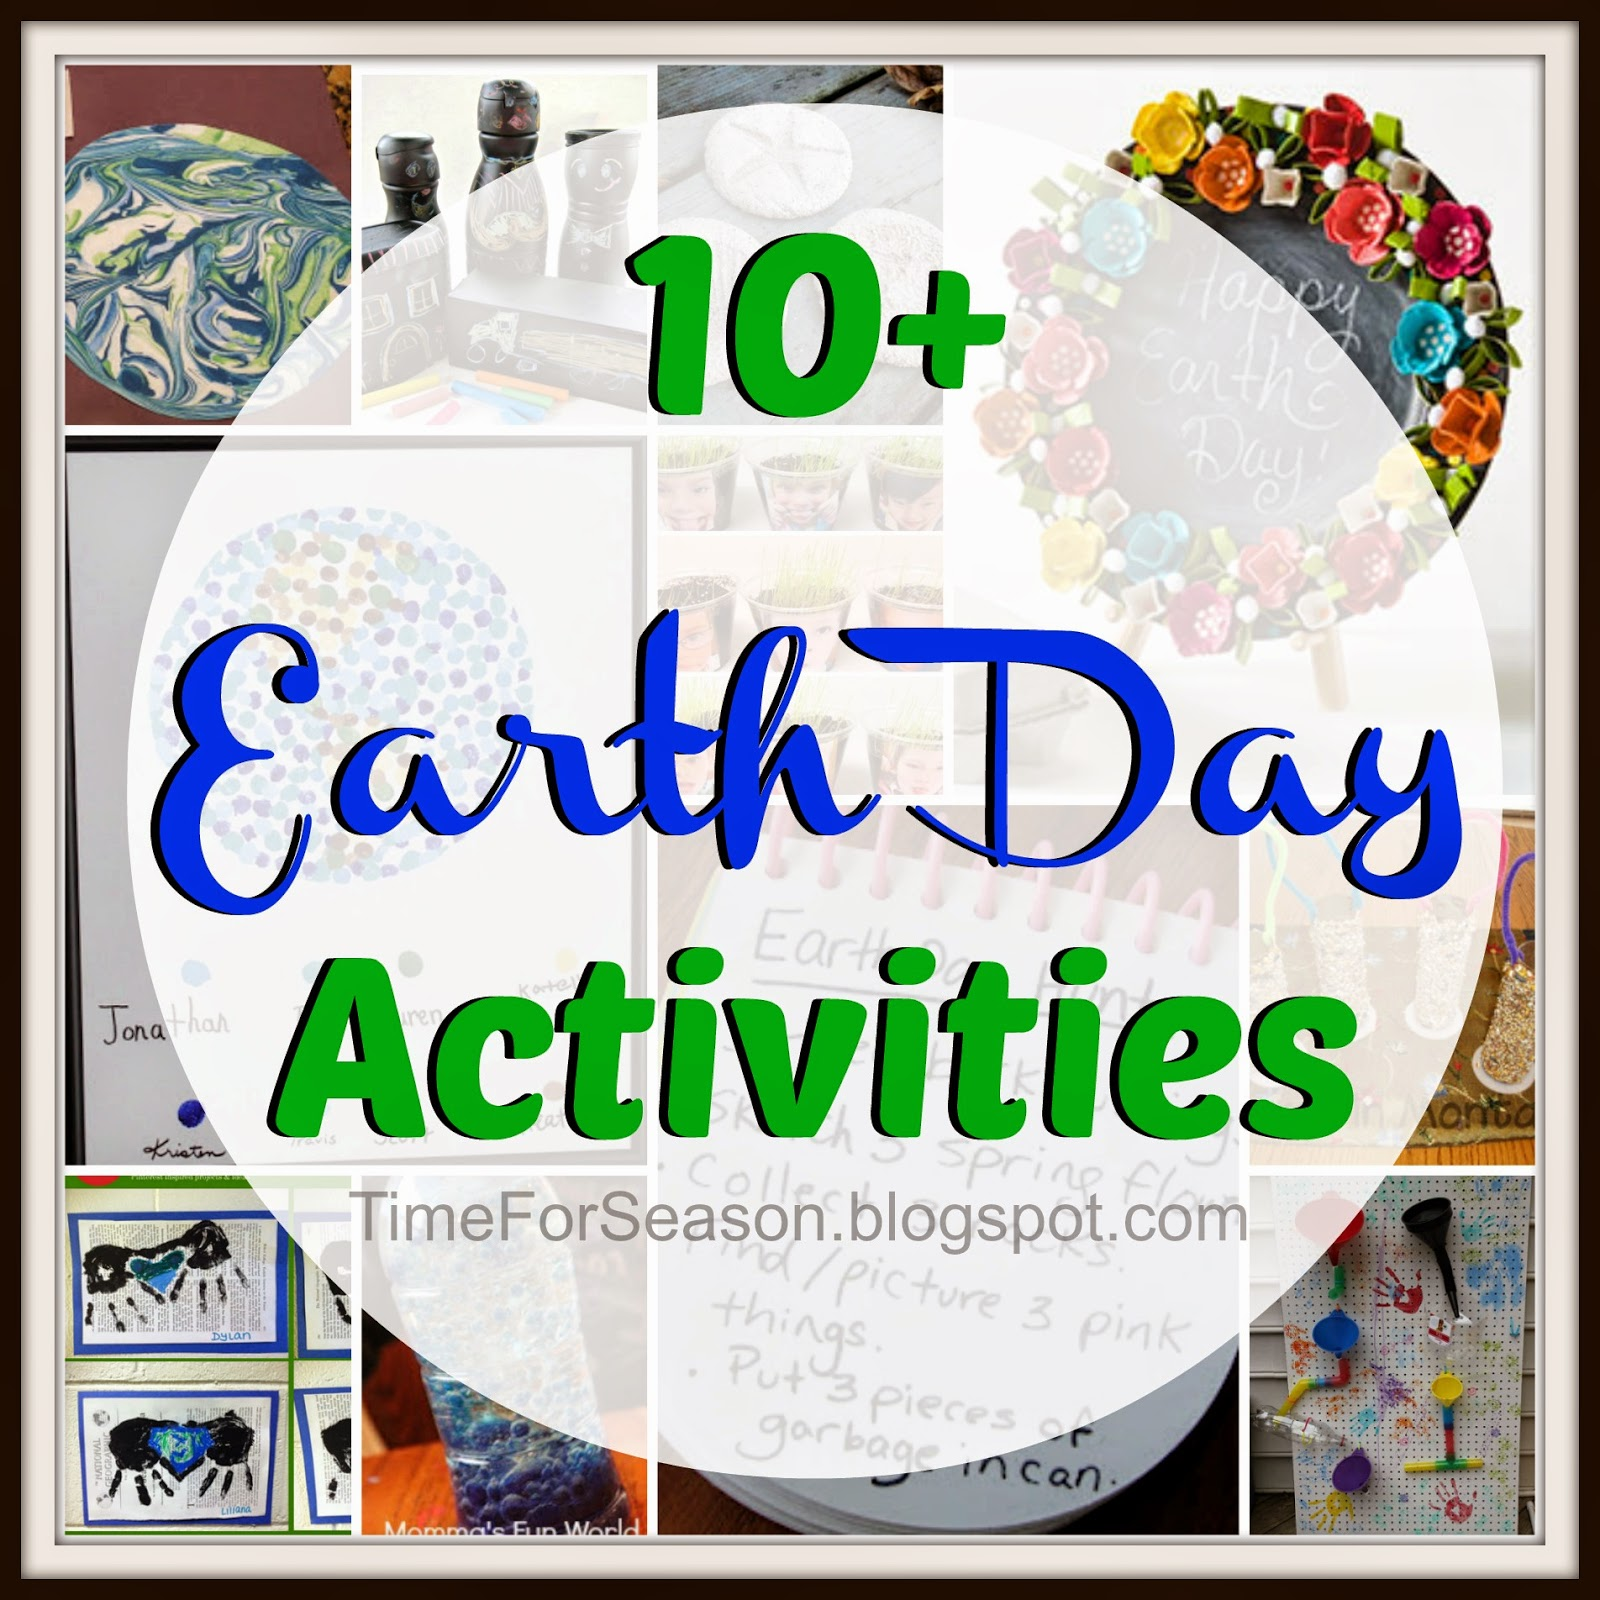 http://timeforseason.blogspot.com/2014/04/earth-day-activities-crafts.html